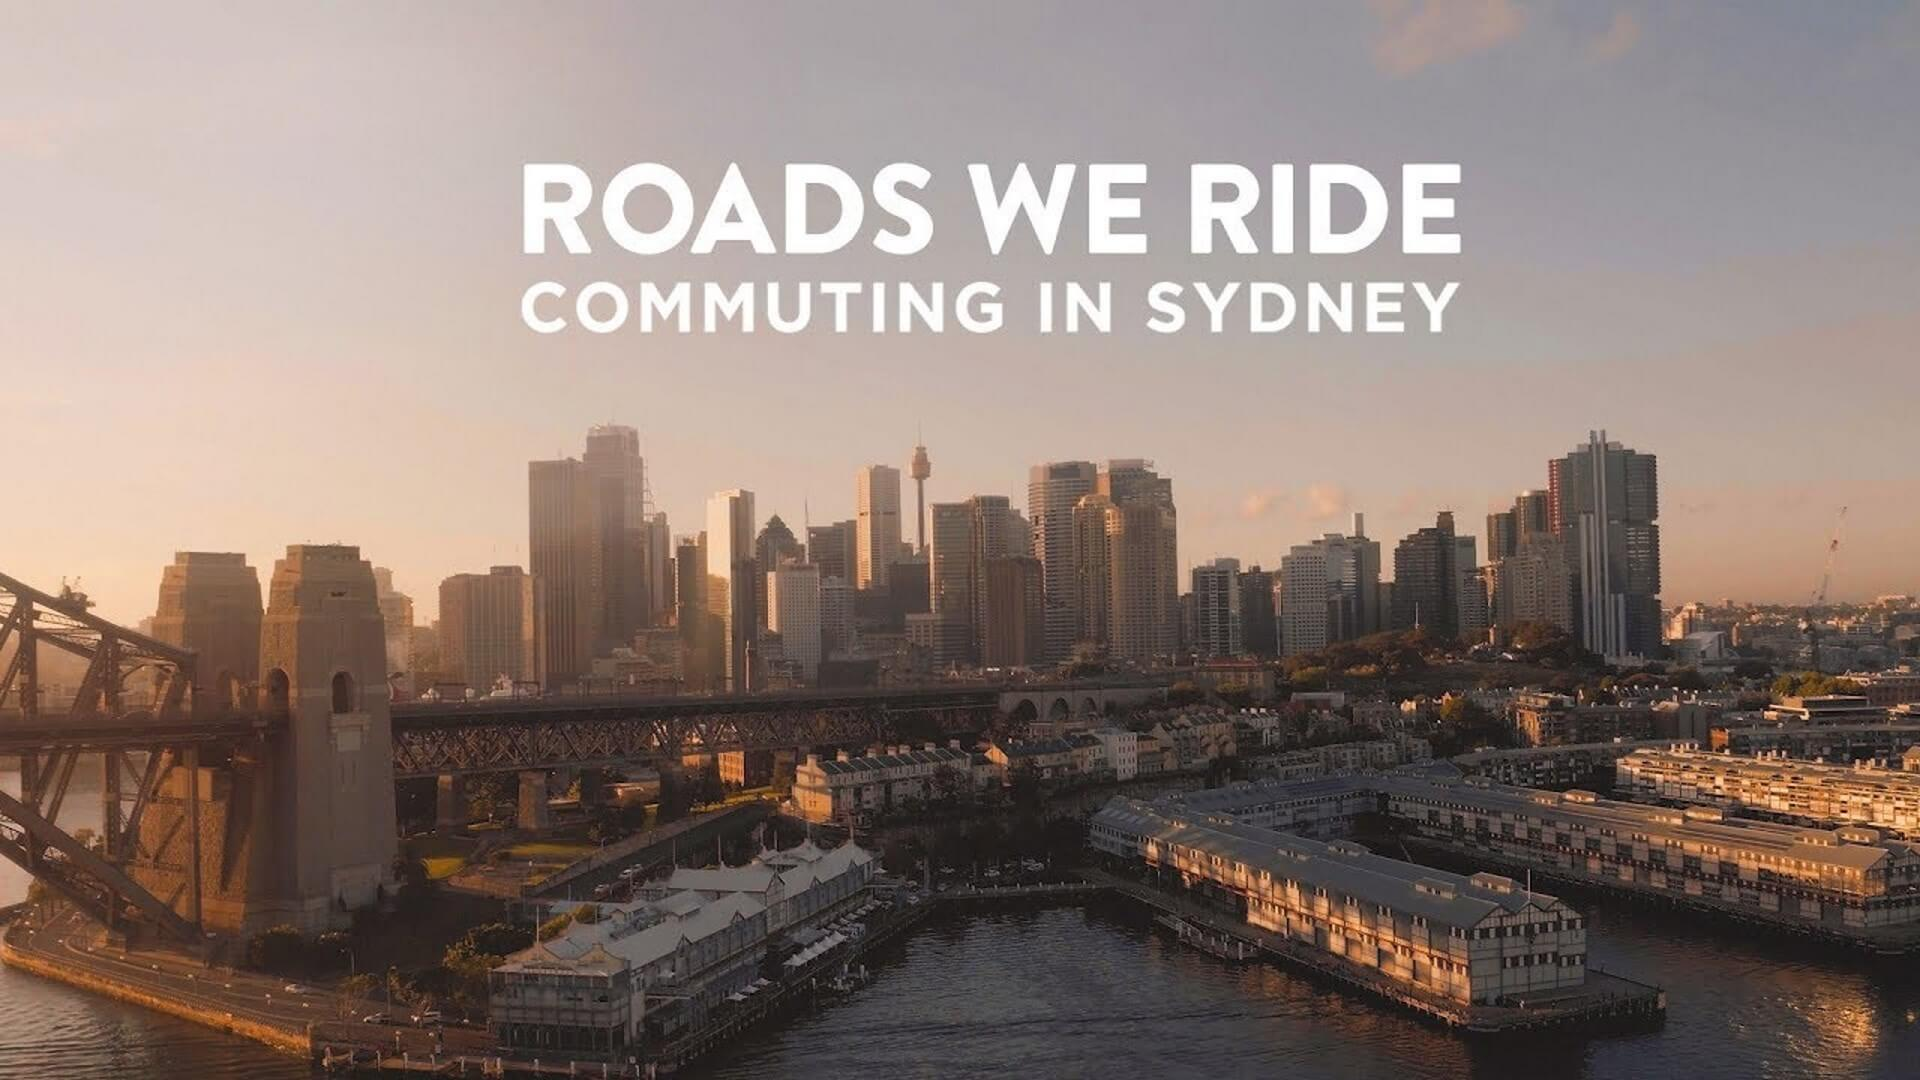 Roads We Ride Commuting in Sydney